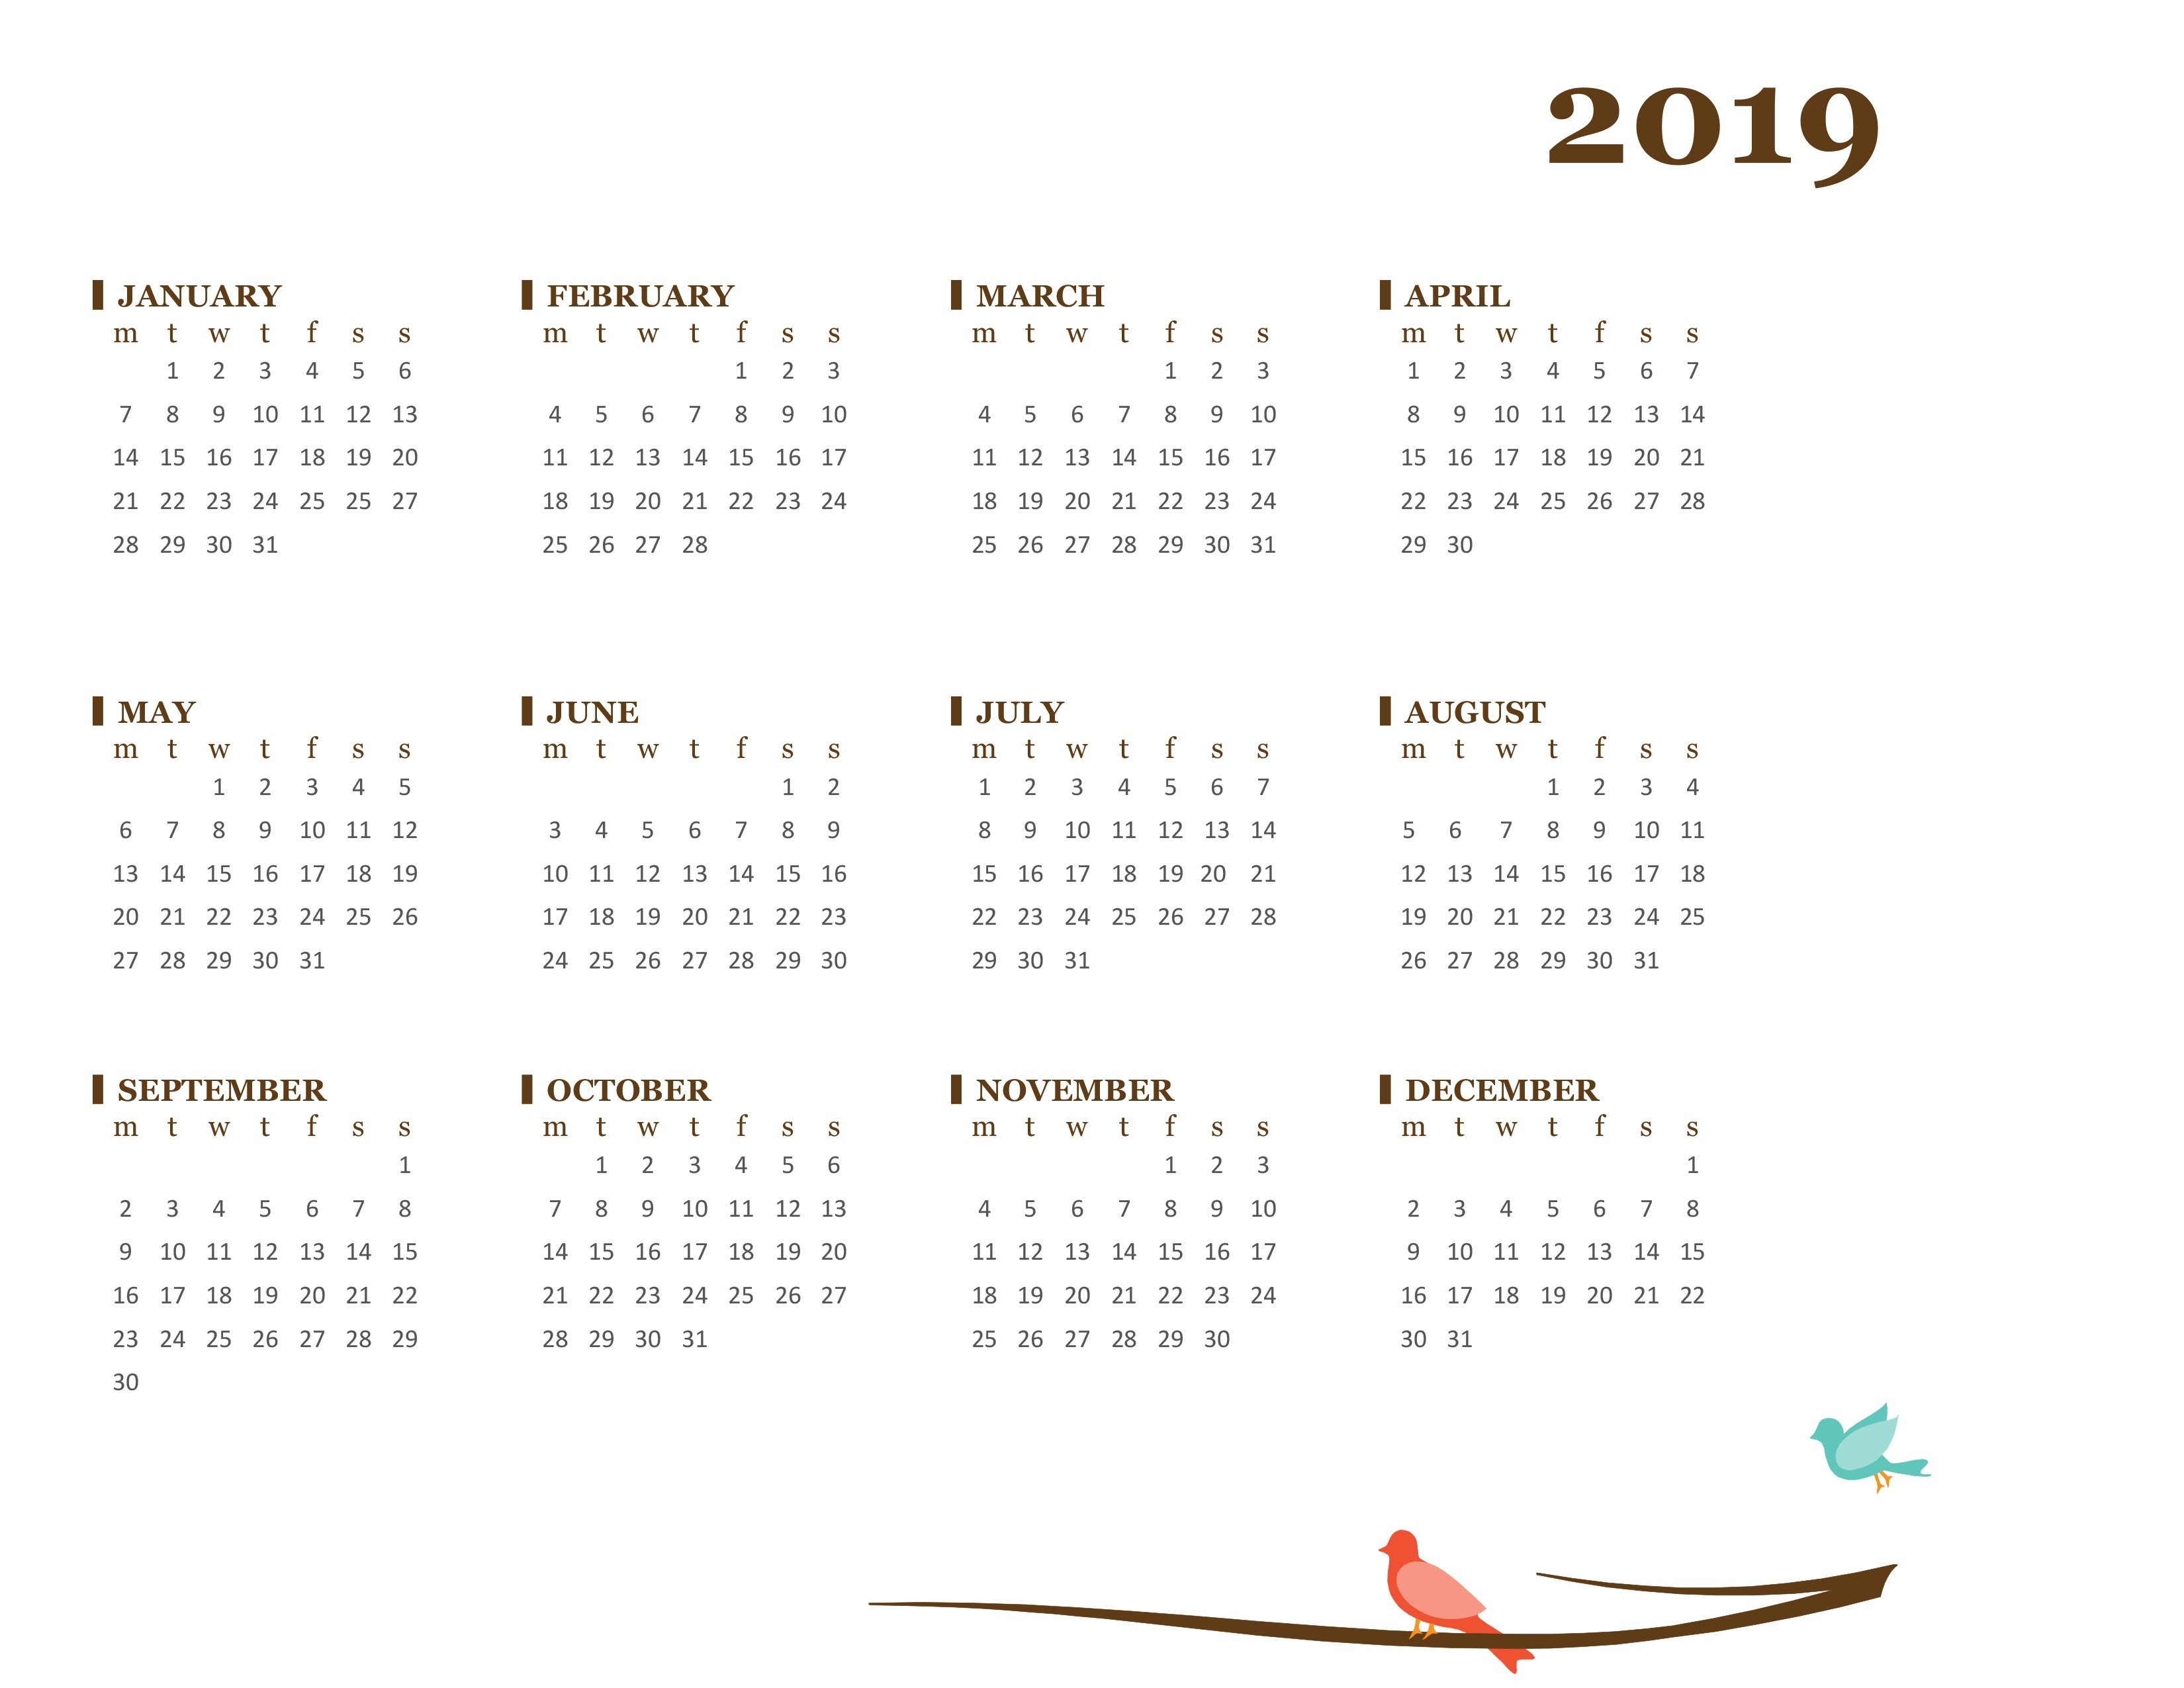 2019 Yearly Calendar (Mon-Sun) Calendar E N 2019